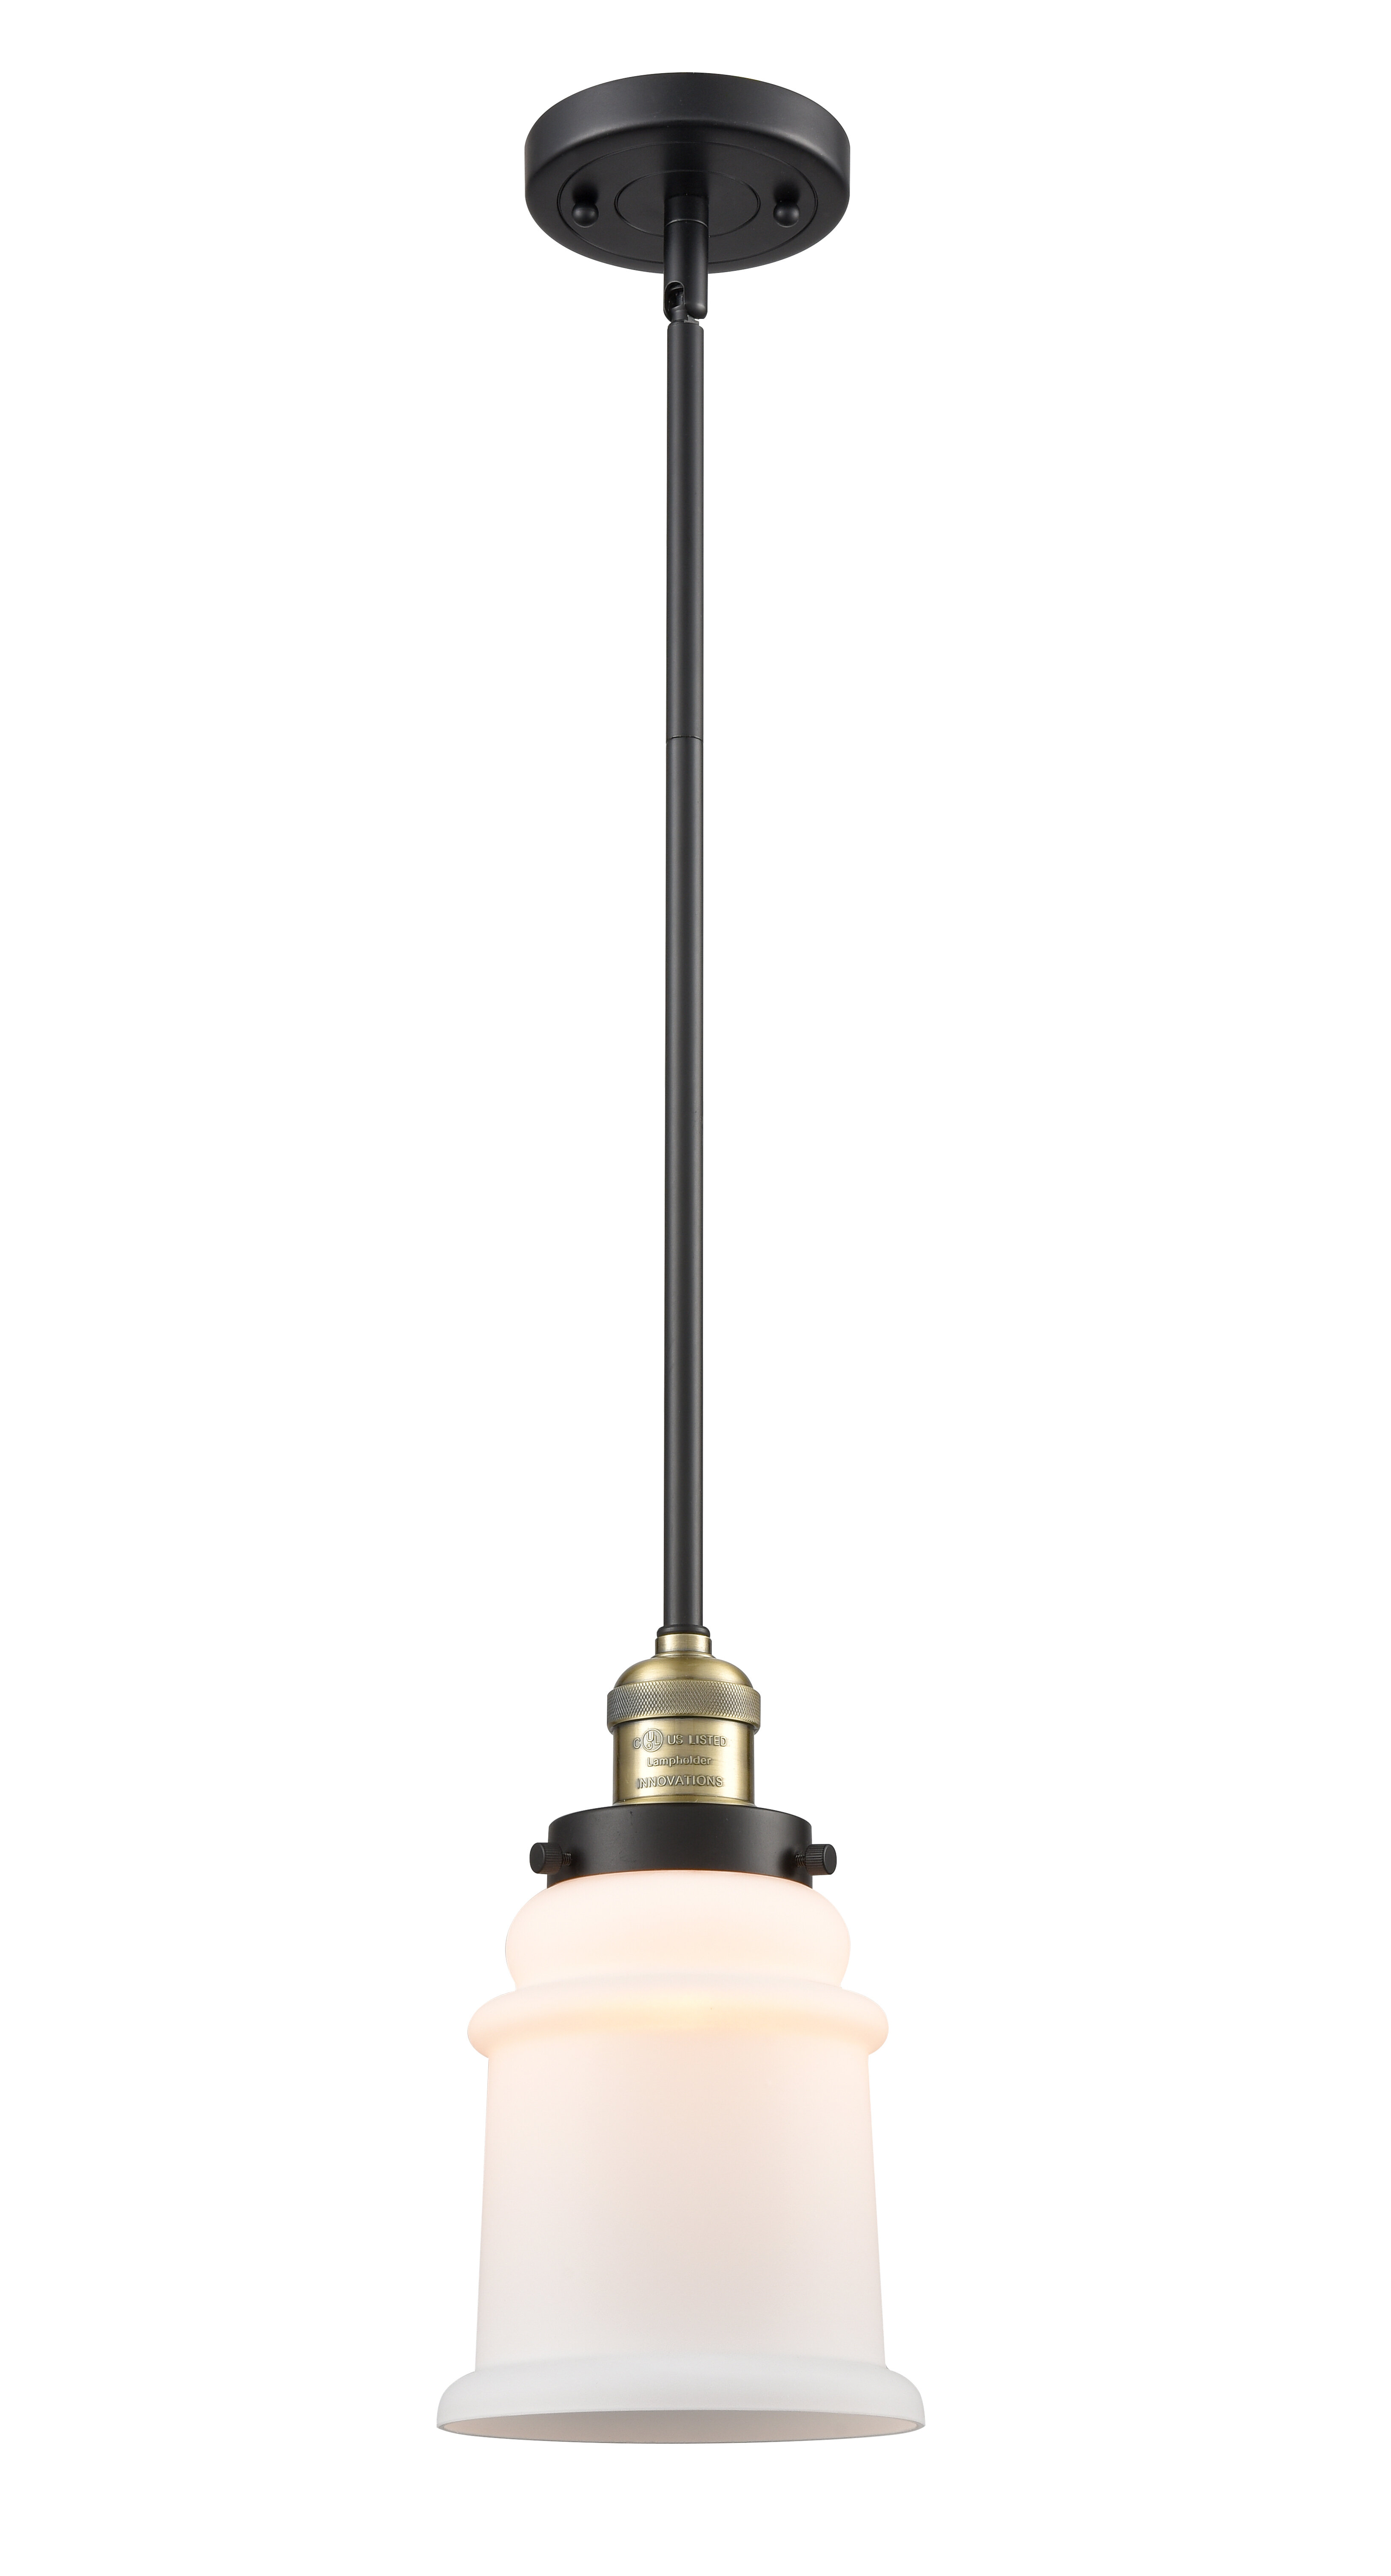 Longshore Tides Evalyn 1 Light Single Bell Pendant Wayfair